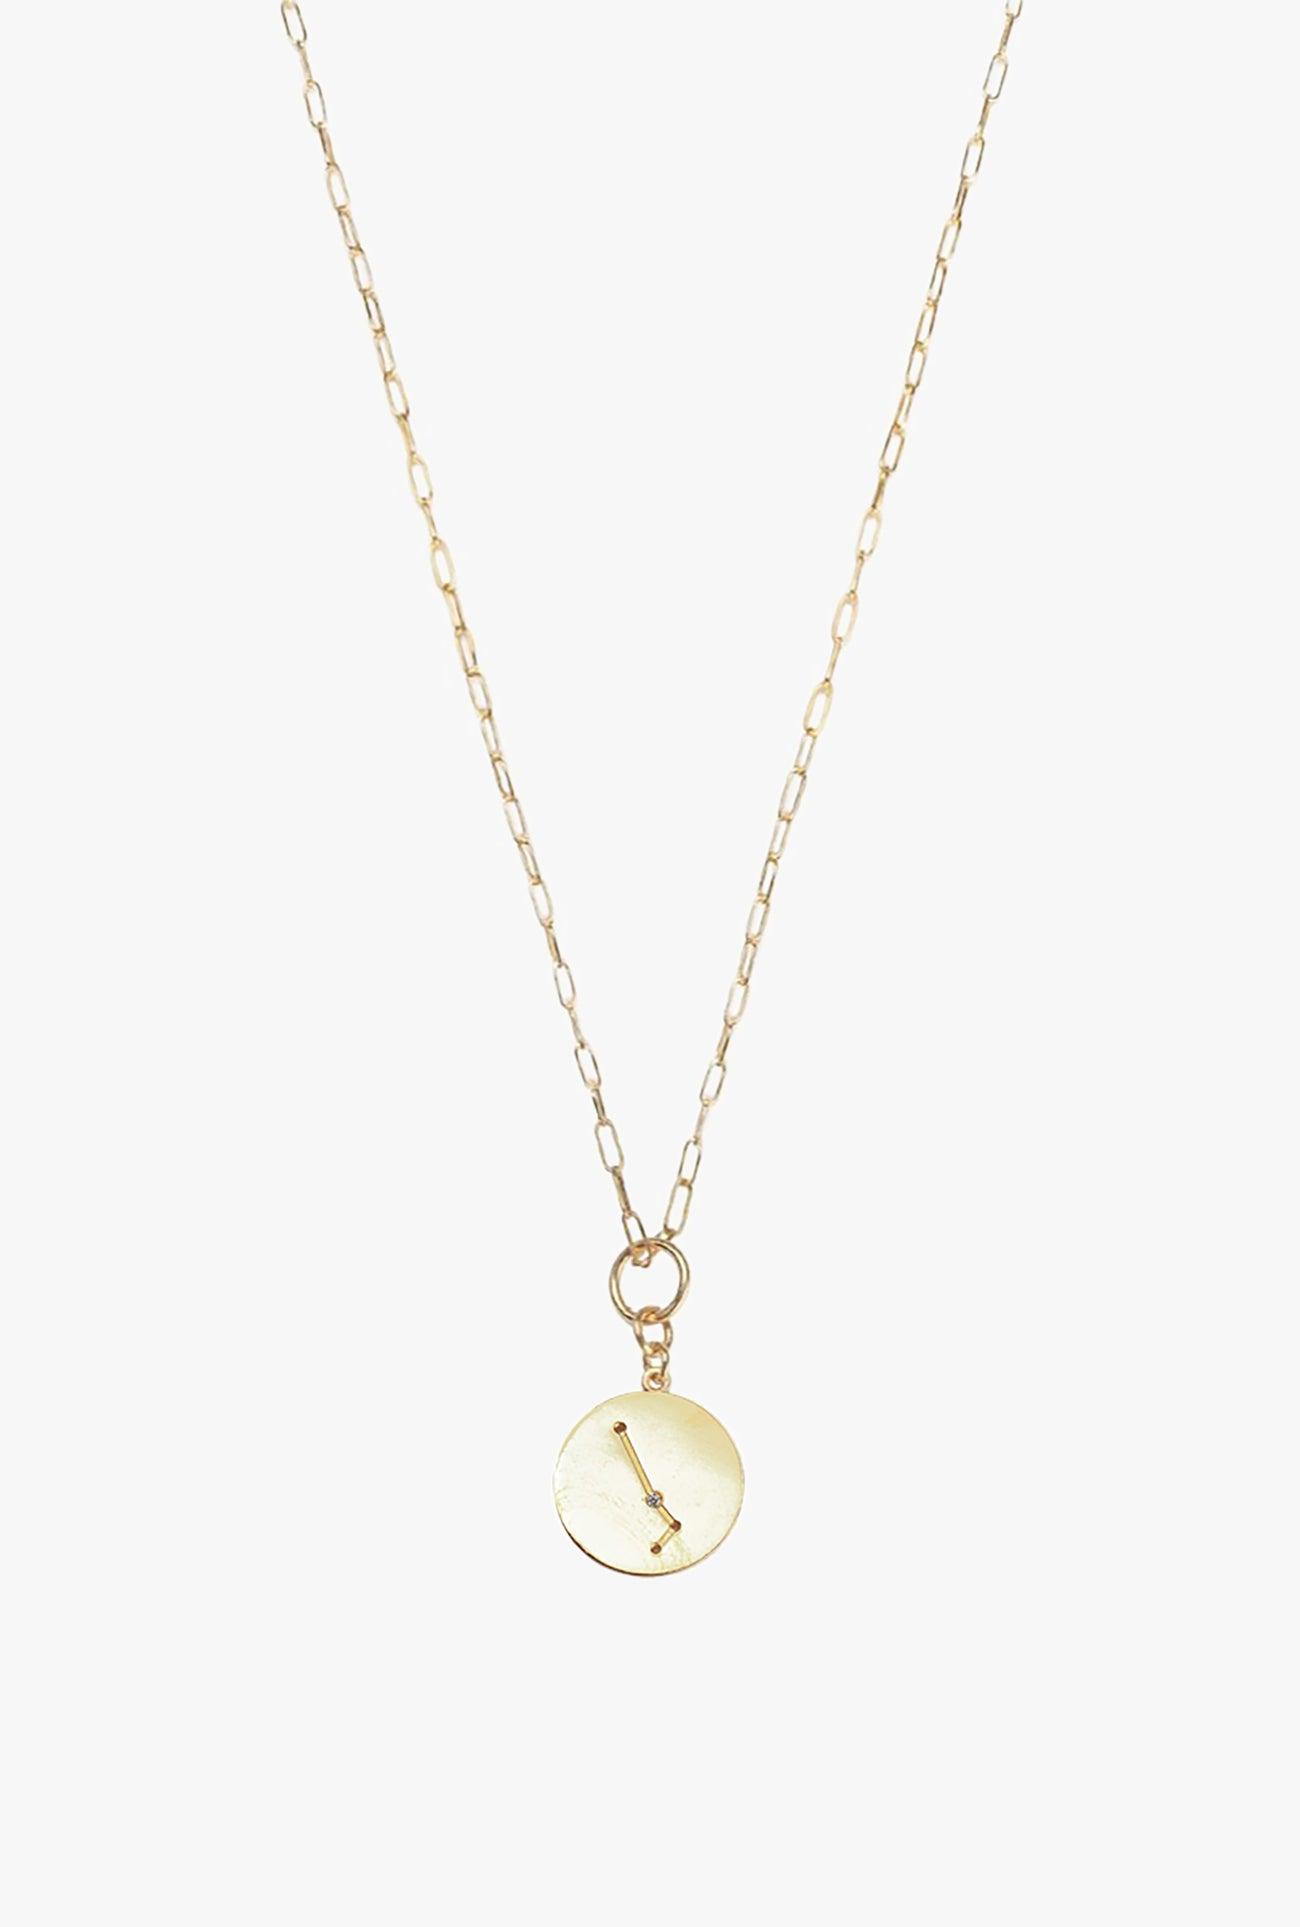 Constellation Aries Charm Necklace